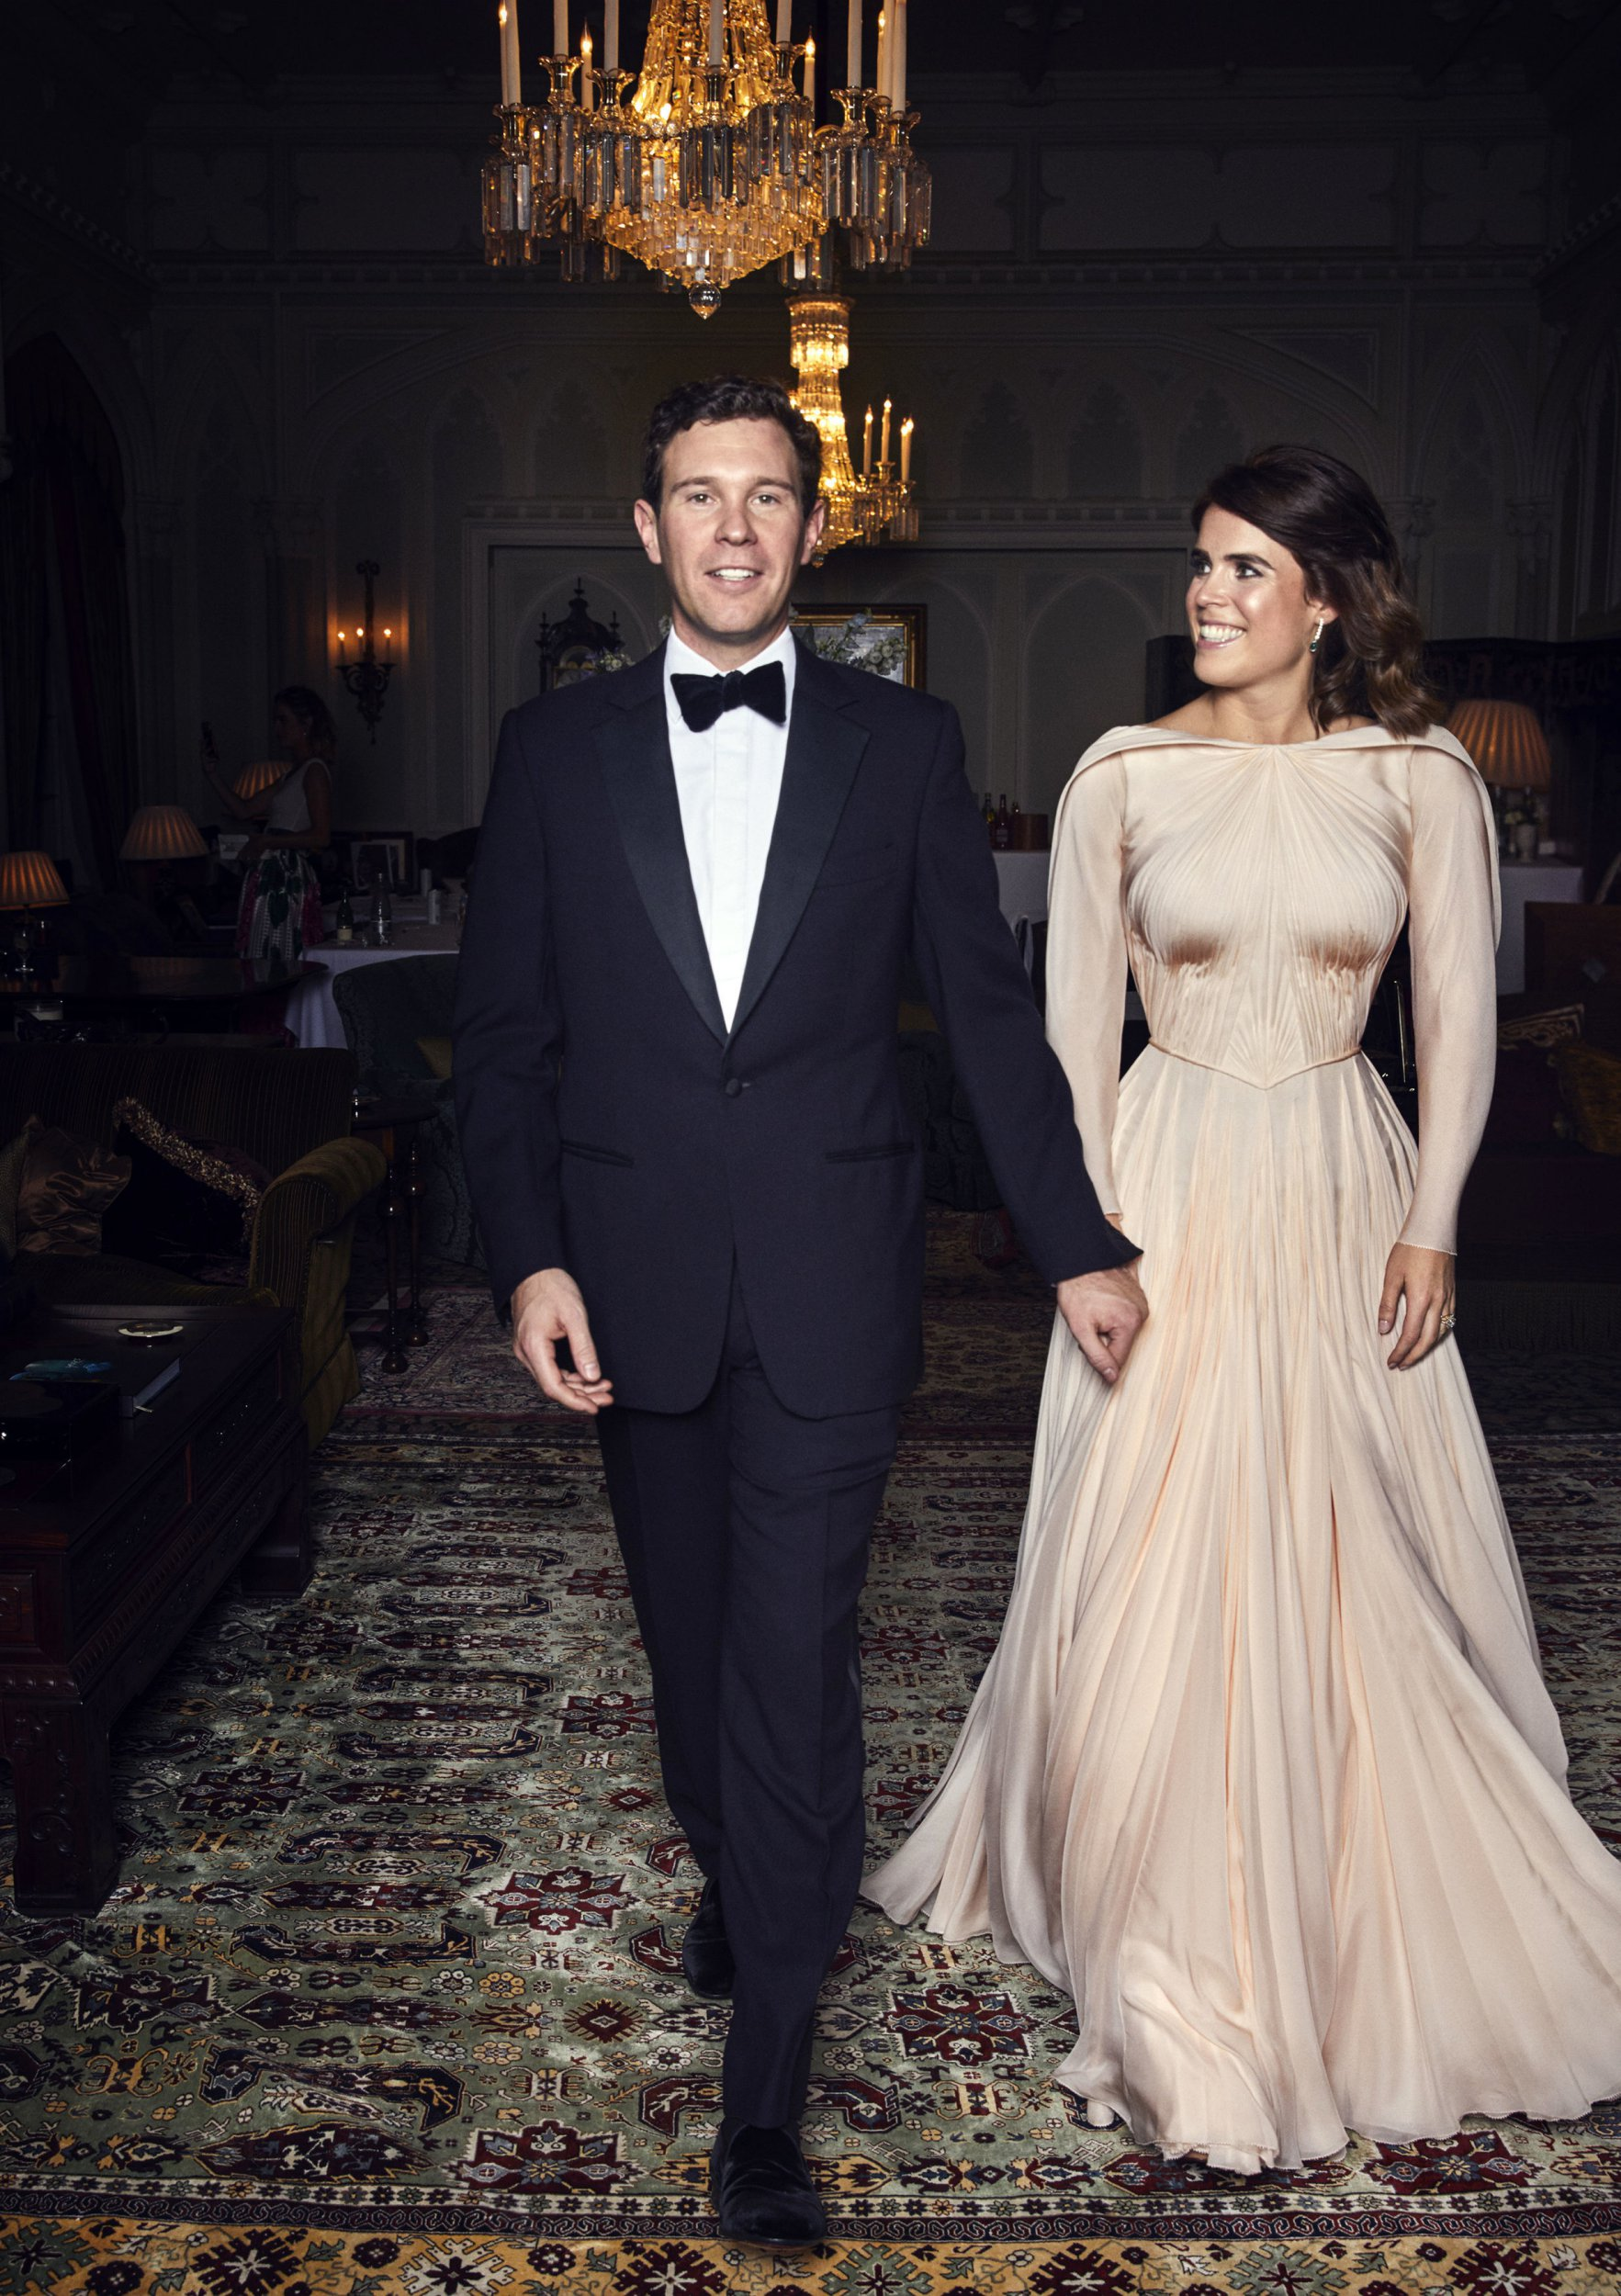 This official wedding photograph released by the Royal Communications of Princess Eugenie and Mr Brooksbank at Royal Lodge, Windsor, ahead of the private evening dinner, following their Wedding. Princess Eugenie's evening dress was designed by Zac Posen. Mr Posen was inspired by the beauty of Windsor and the surrounding countryside. The choice of colour reflects the blush of an English rose. Mr Posen took his inspiration from the White Rose of York. PRESS ASSOCIATION Photo. Issue date: Saturday October 13, 2018. See PA story ROYAL Wedding. Photo credit should read: Alex Bramall/PA Wire Embargoed to 2230 BST Saturday October 13 2018. NEWS EDITORIAL USE ONLY. NO COMMERCIAL USE. NO MERCHANDISING, ADVERTISING, SOUVENIRS, MEMORABILIA or COLOURABLY SIMILAR. NOT FOR USE AFTER 30th April 2019 WITHOUT PRIOR PERMISSION FROM BUCKINGHAM PALACE. NO CROPPING. Copyright in the photograph is vested in Princess Eugenie of York and Mr Jack Brooksbank and Alex Bramall. Publications are asked to credit the photograph to Alex Bramall. No charge should be made for the supply, release or publication of the photograph. The photograph must not be digitally enhanced, manipulated or modified in any manner or form and must include all of the individuals in the photograph when published. NOTE TO EDITORS: This handout photo may only be used in for editorial reporting purposes for the contemporaneous illustration of events, things or the people in the image or facts mentioned in the caption. Reuse of the picture may require further permission from the copyright holder.